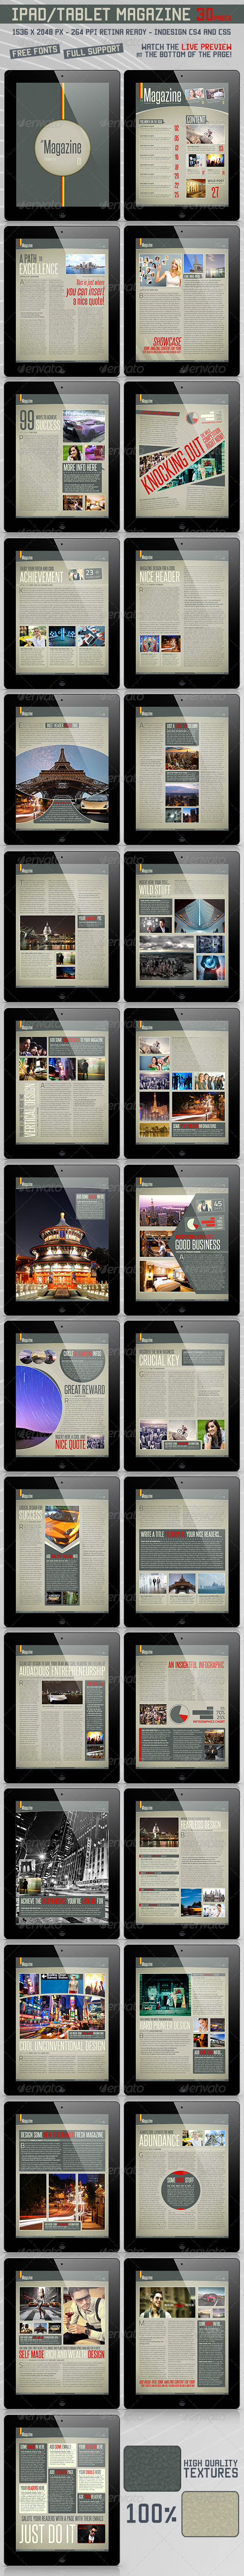 Pad/Tablet Retina Magazine 30 Pages - Magazines Print Templates